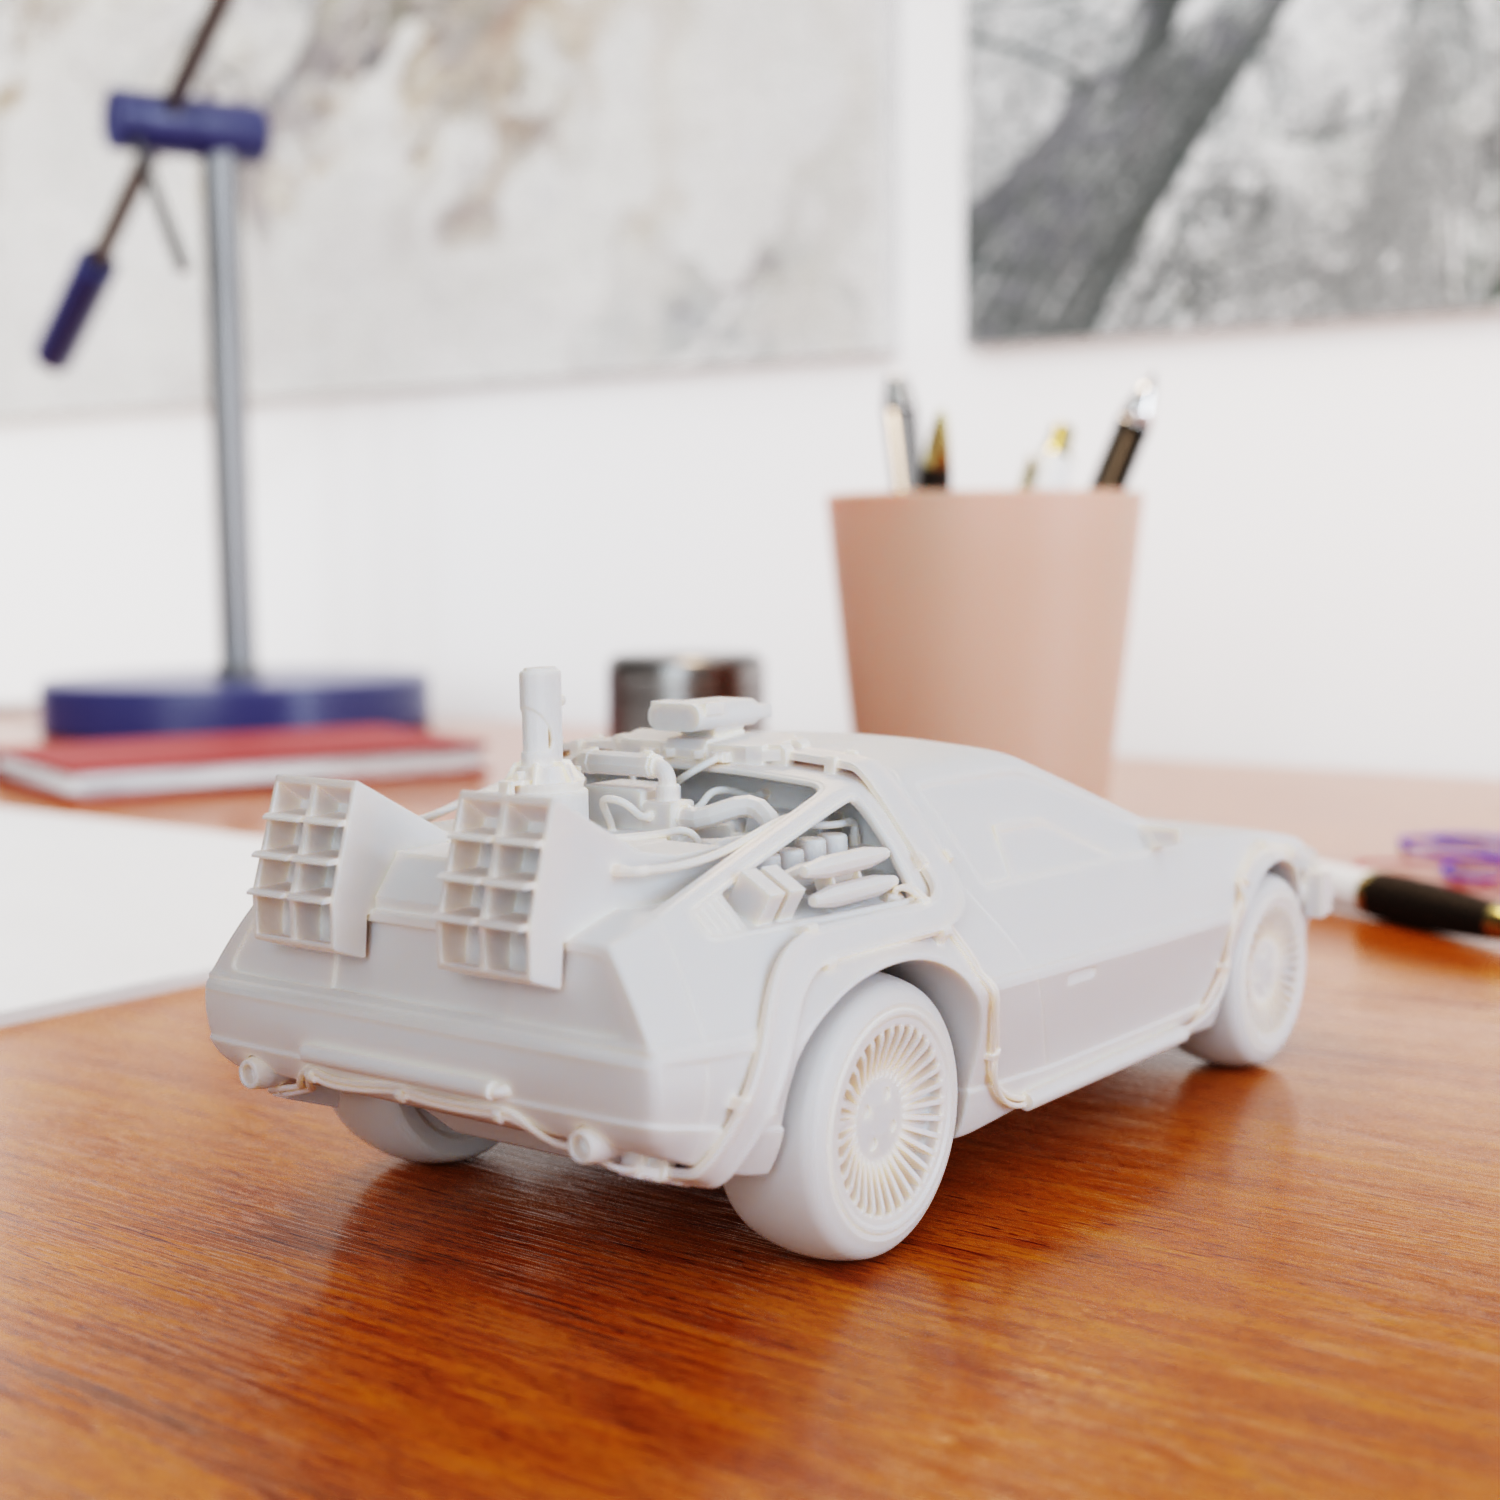 11.png Download STL file Time Machine DeLorean DMC-12 from Back to the future • 3D printing model, Alessandro_Palma